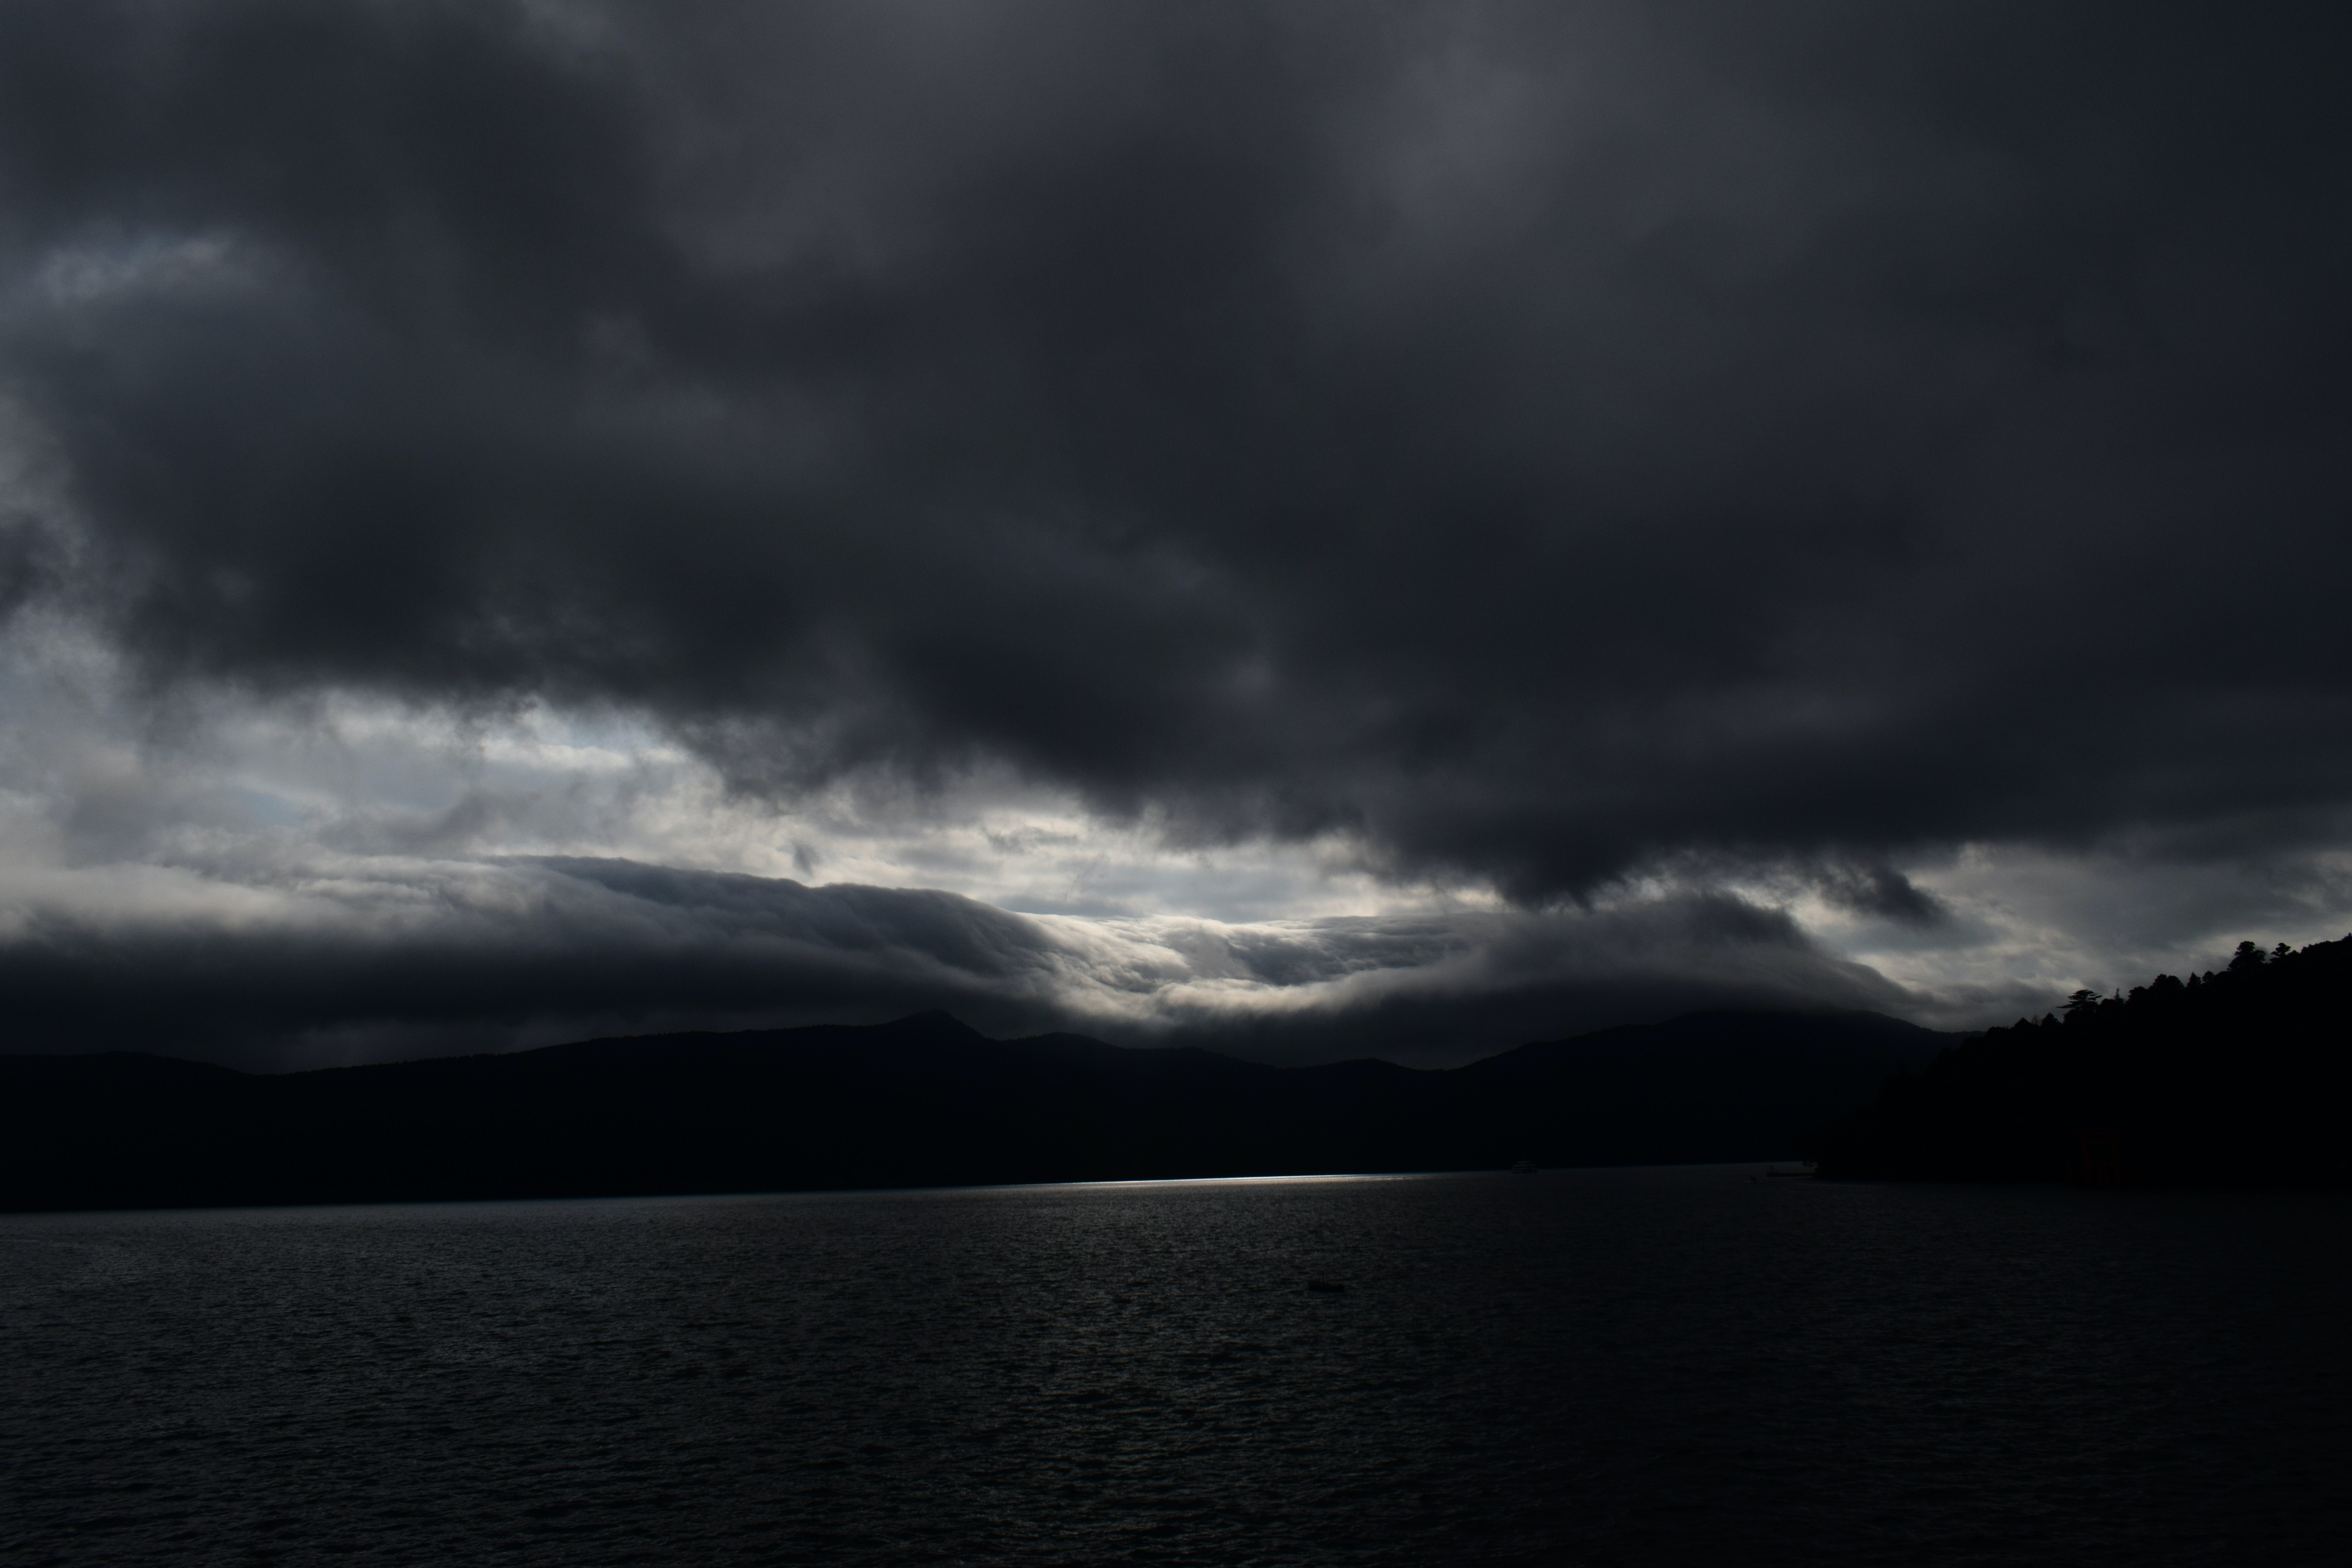 gray clouds over body of water during daytime